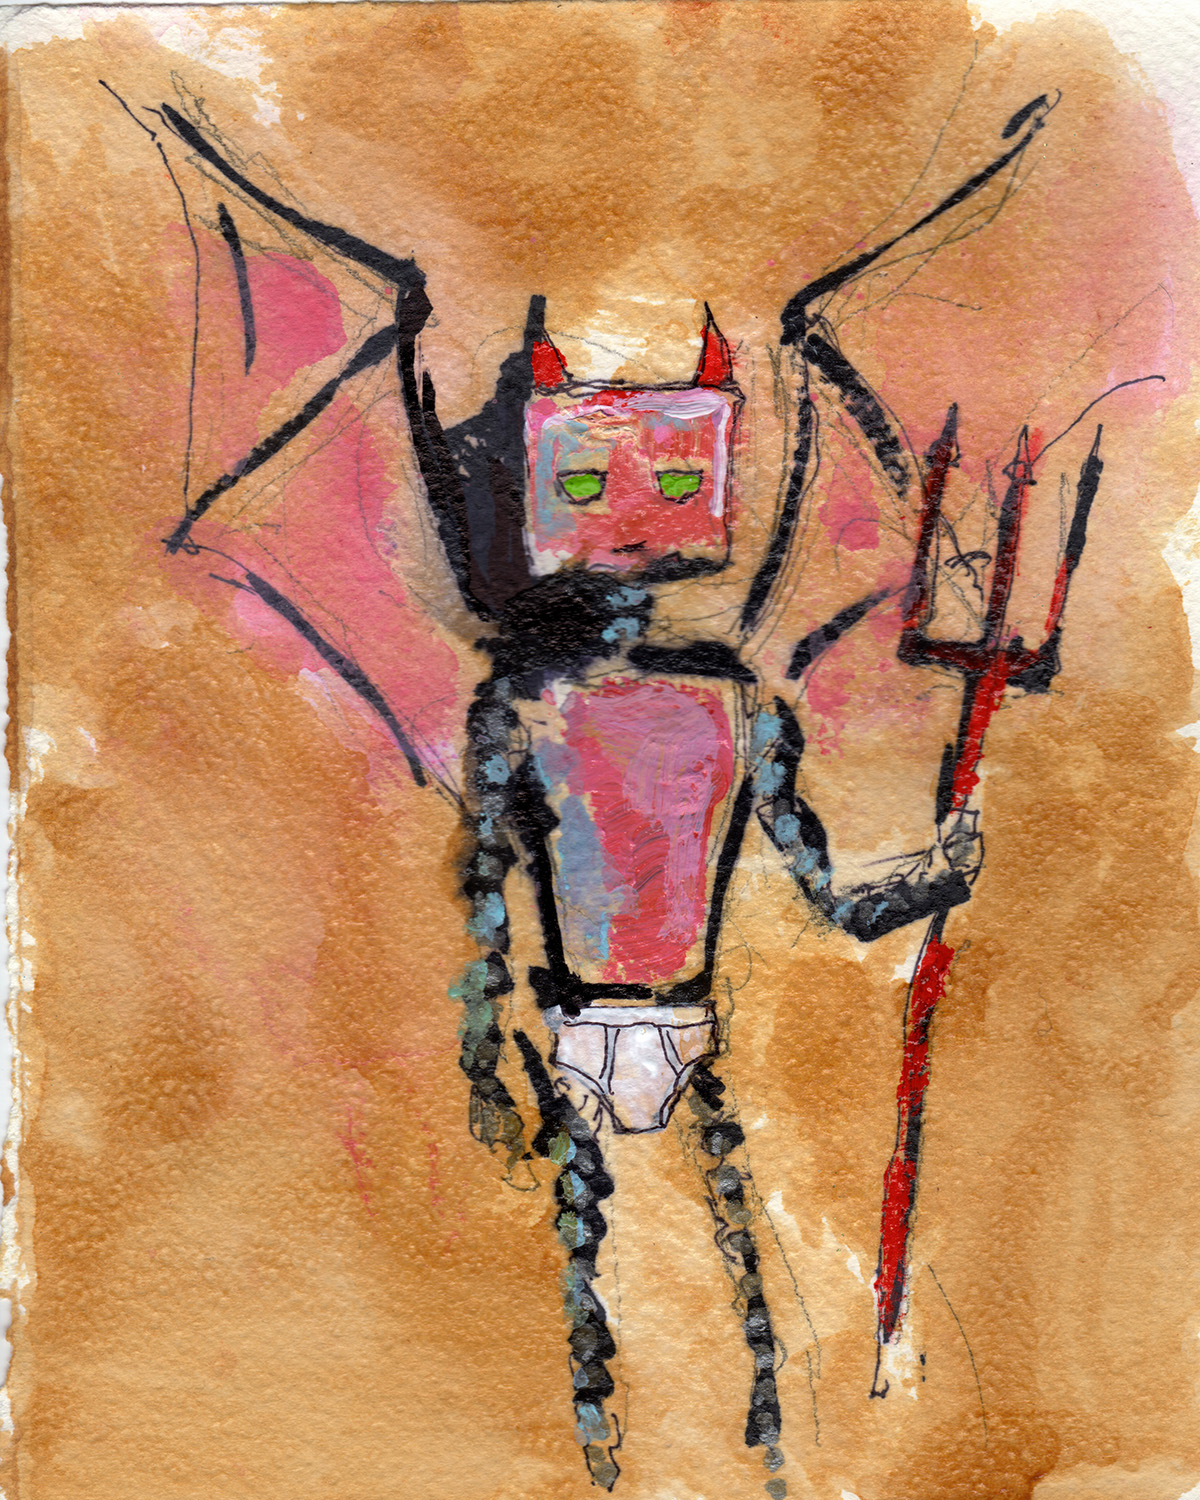 "1/21/13    Devilbot, Briefly.   8"" x 10""   acrylic, shellac, marker, pencil on watercolor paper.    Available to purchase at:    http://taylorwinder.bigcartel.com   SOLD   Prints available at:  http://society6.com/taylorwinder"